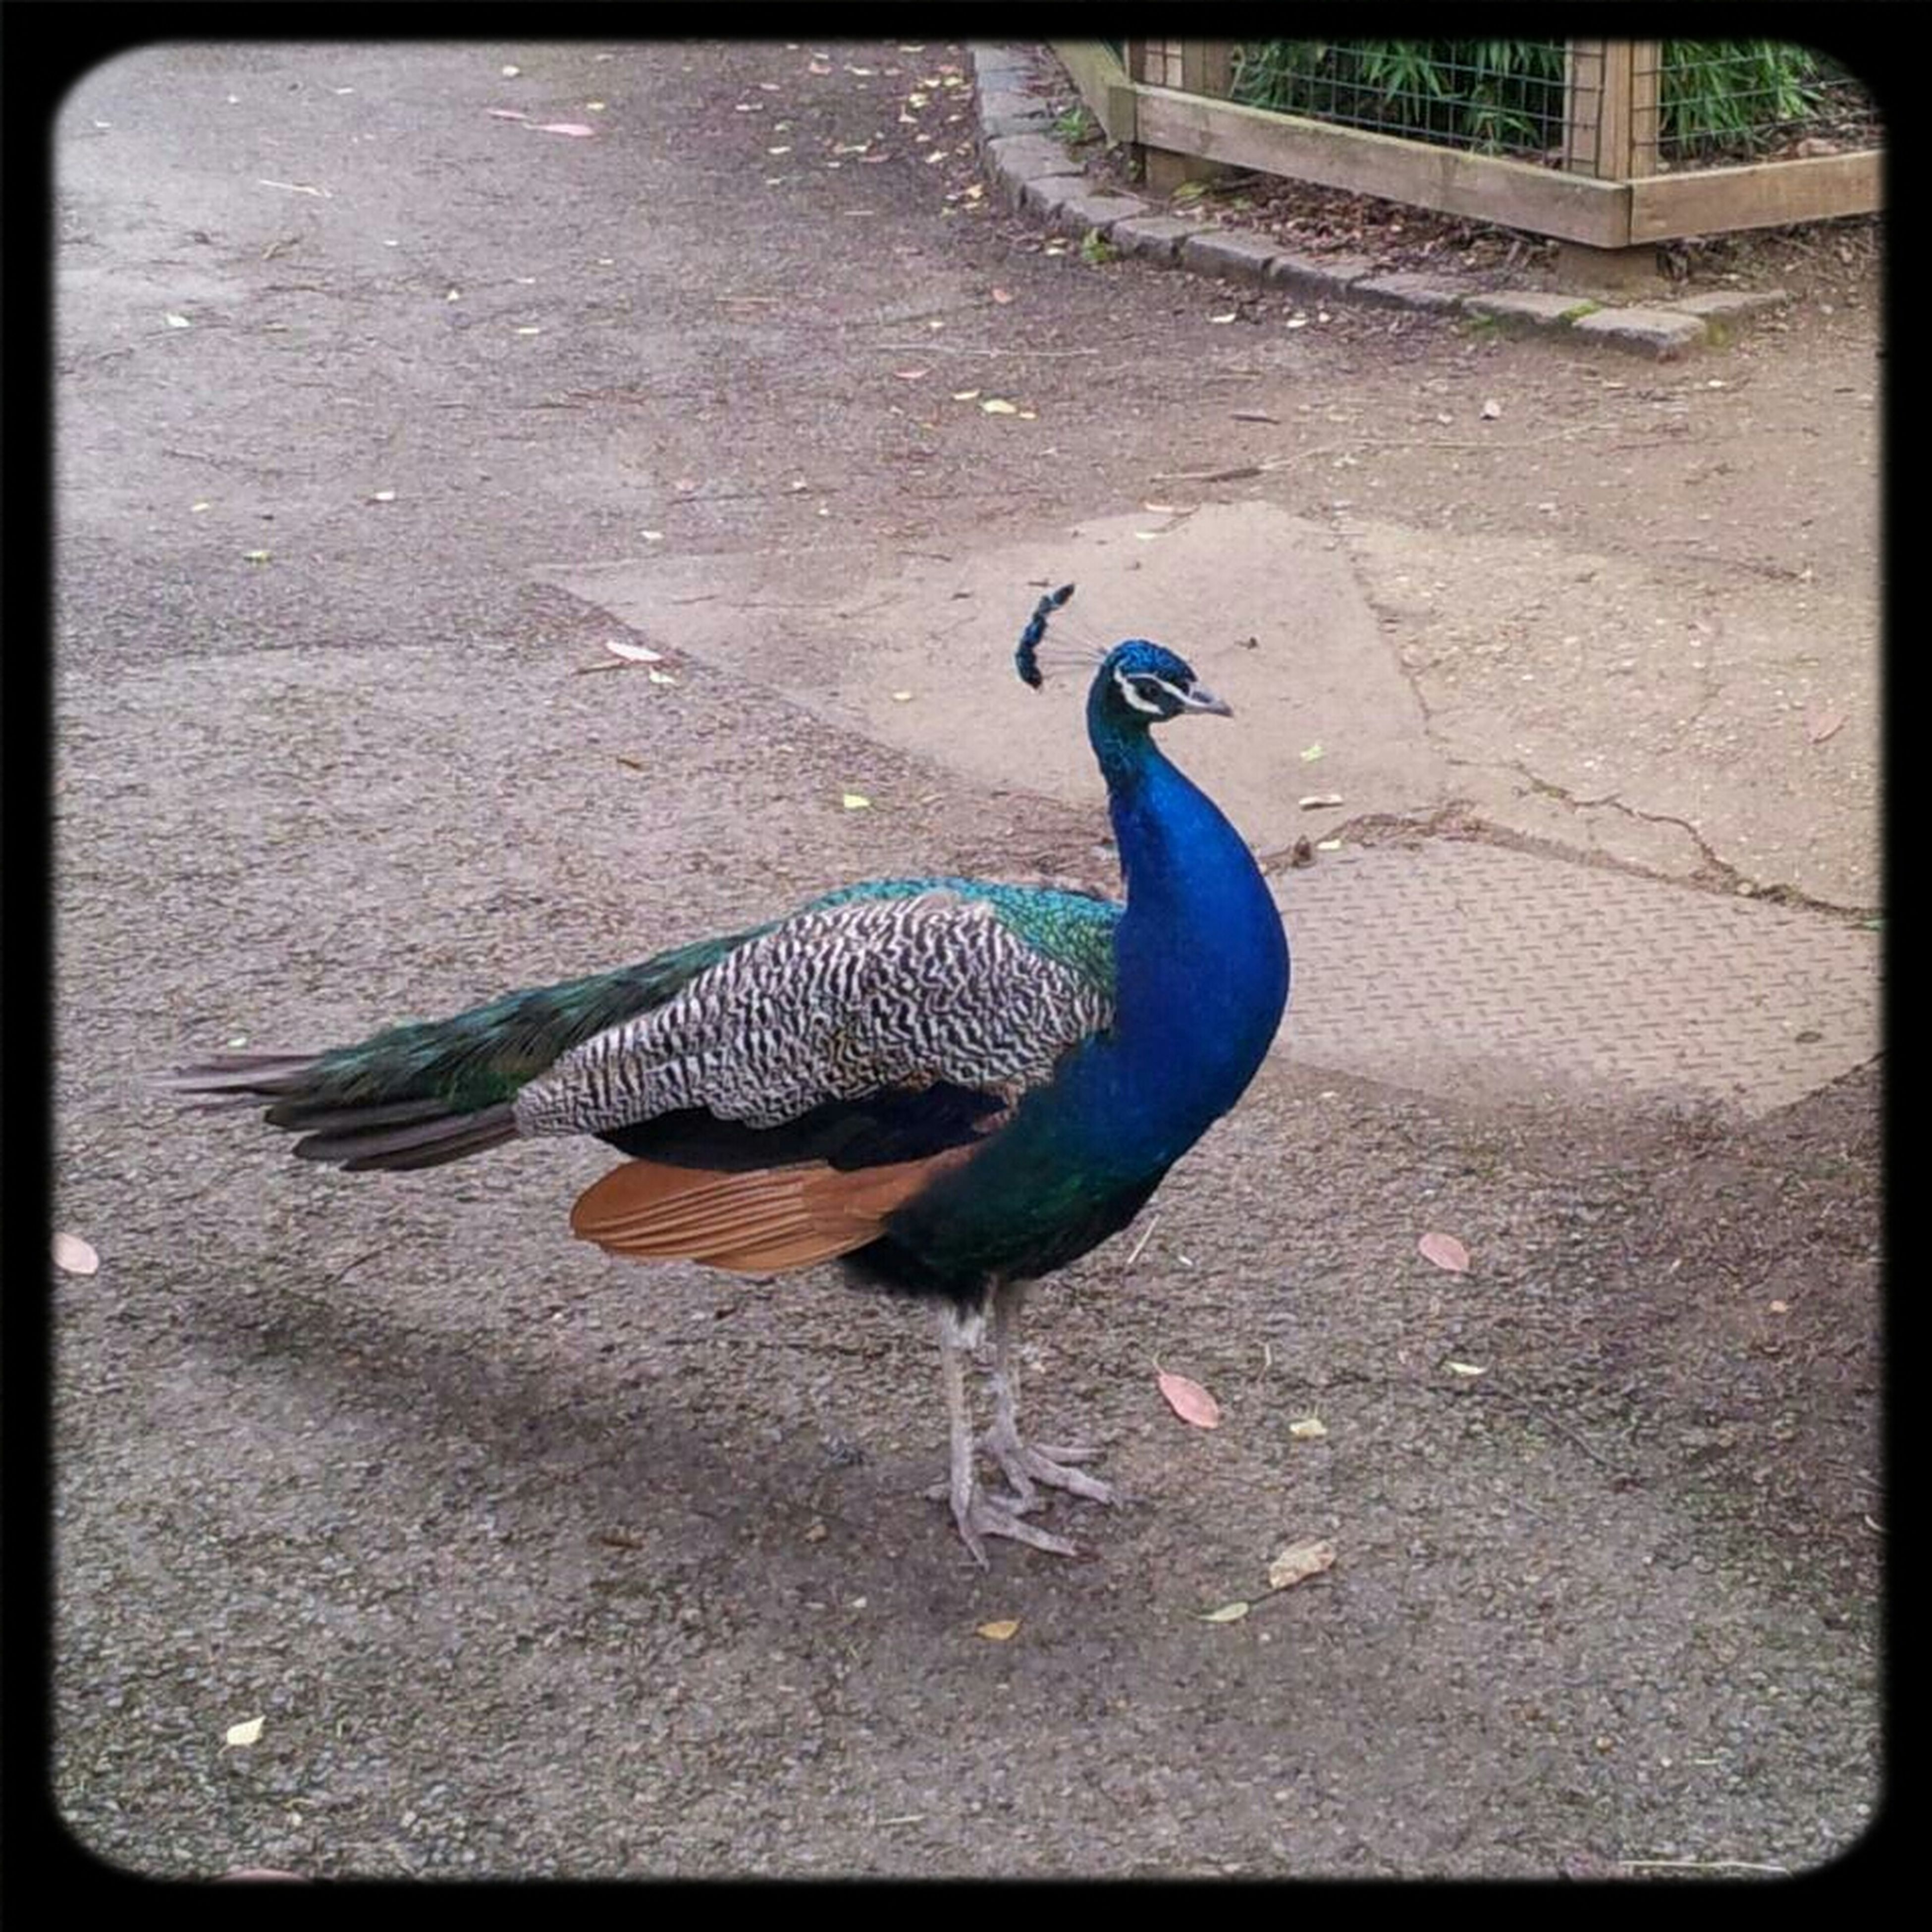 animal themes, animals in the wild, bird, wildlife, one animal, full length, side view, peacock, nature, high angle view, outdoors, no people, sunlight, zoology, auto post production filter, day, transfer print, blue, feather, beauty in nature